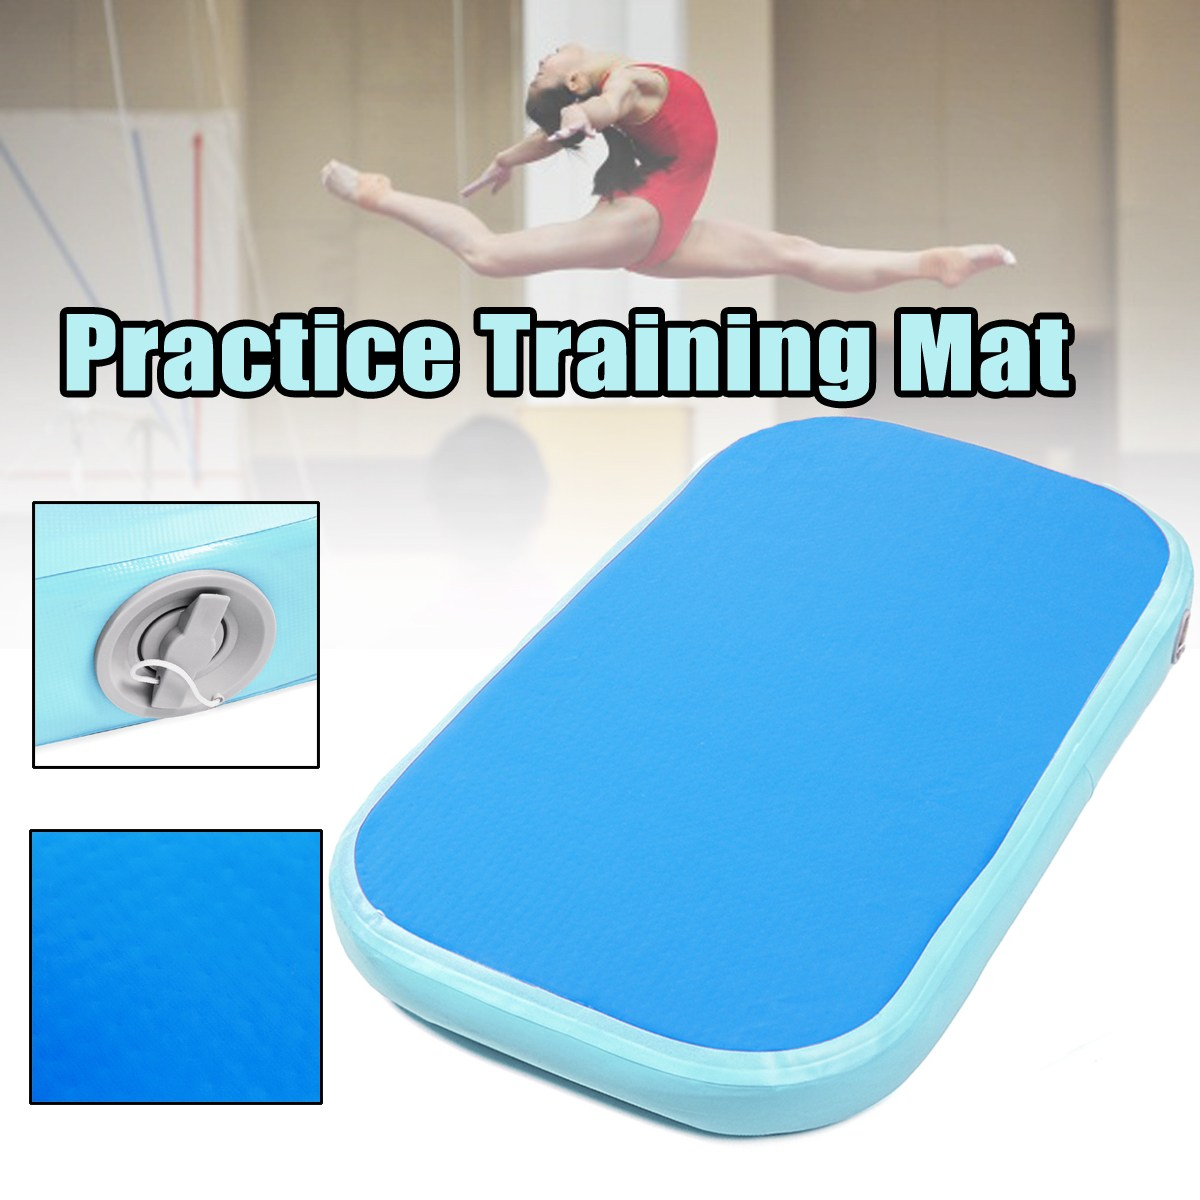 100x60x10cm Air Tumbling Track Roller Home Training Inflatable Matfor Gymnastics Gym Exercise Mat Air Track Tumbling Mat gymnastics mat thick four folding panel fitness exercise 2 4mx1 2mx3cm